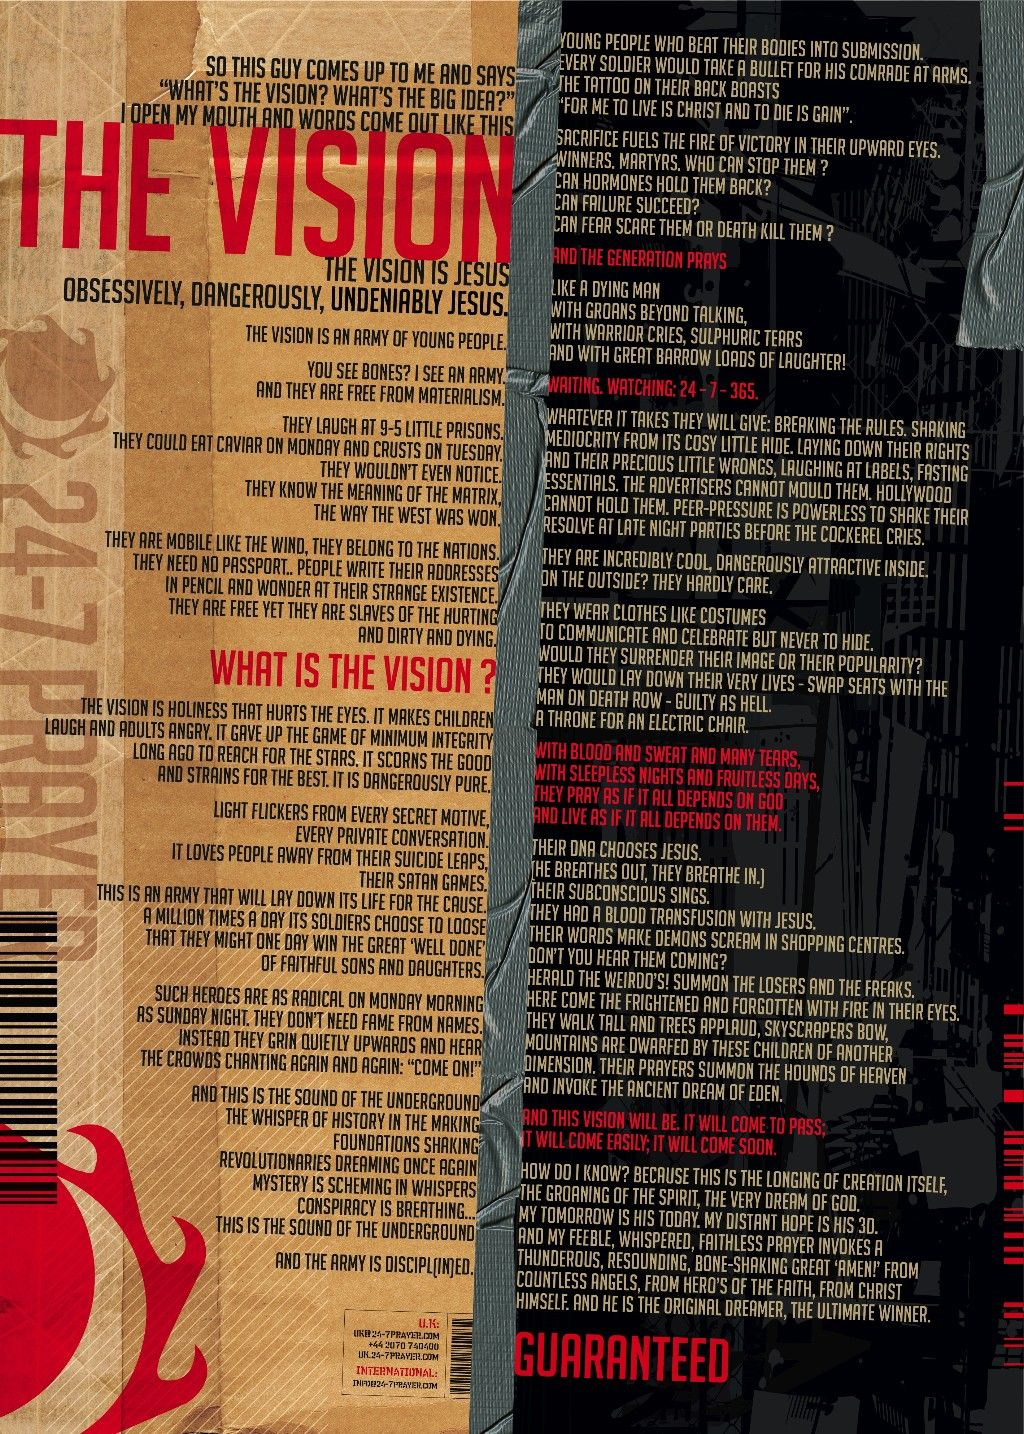 the vision - written in one of the first 24-7 prayer rooms (found in